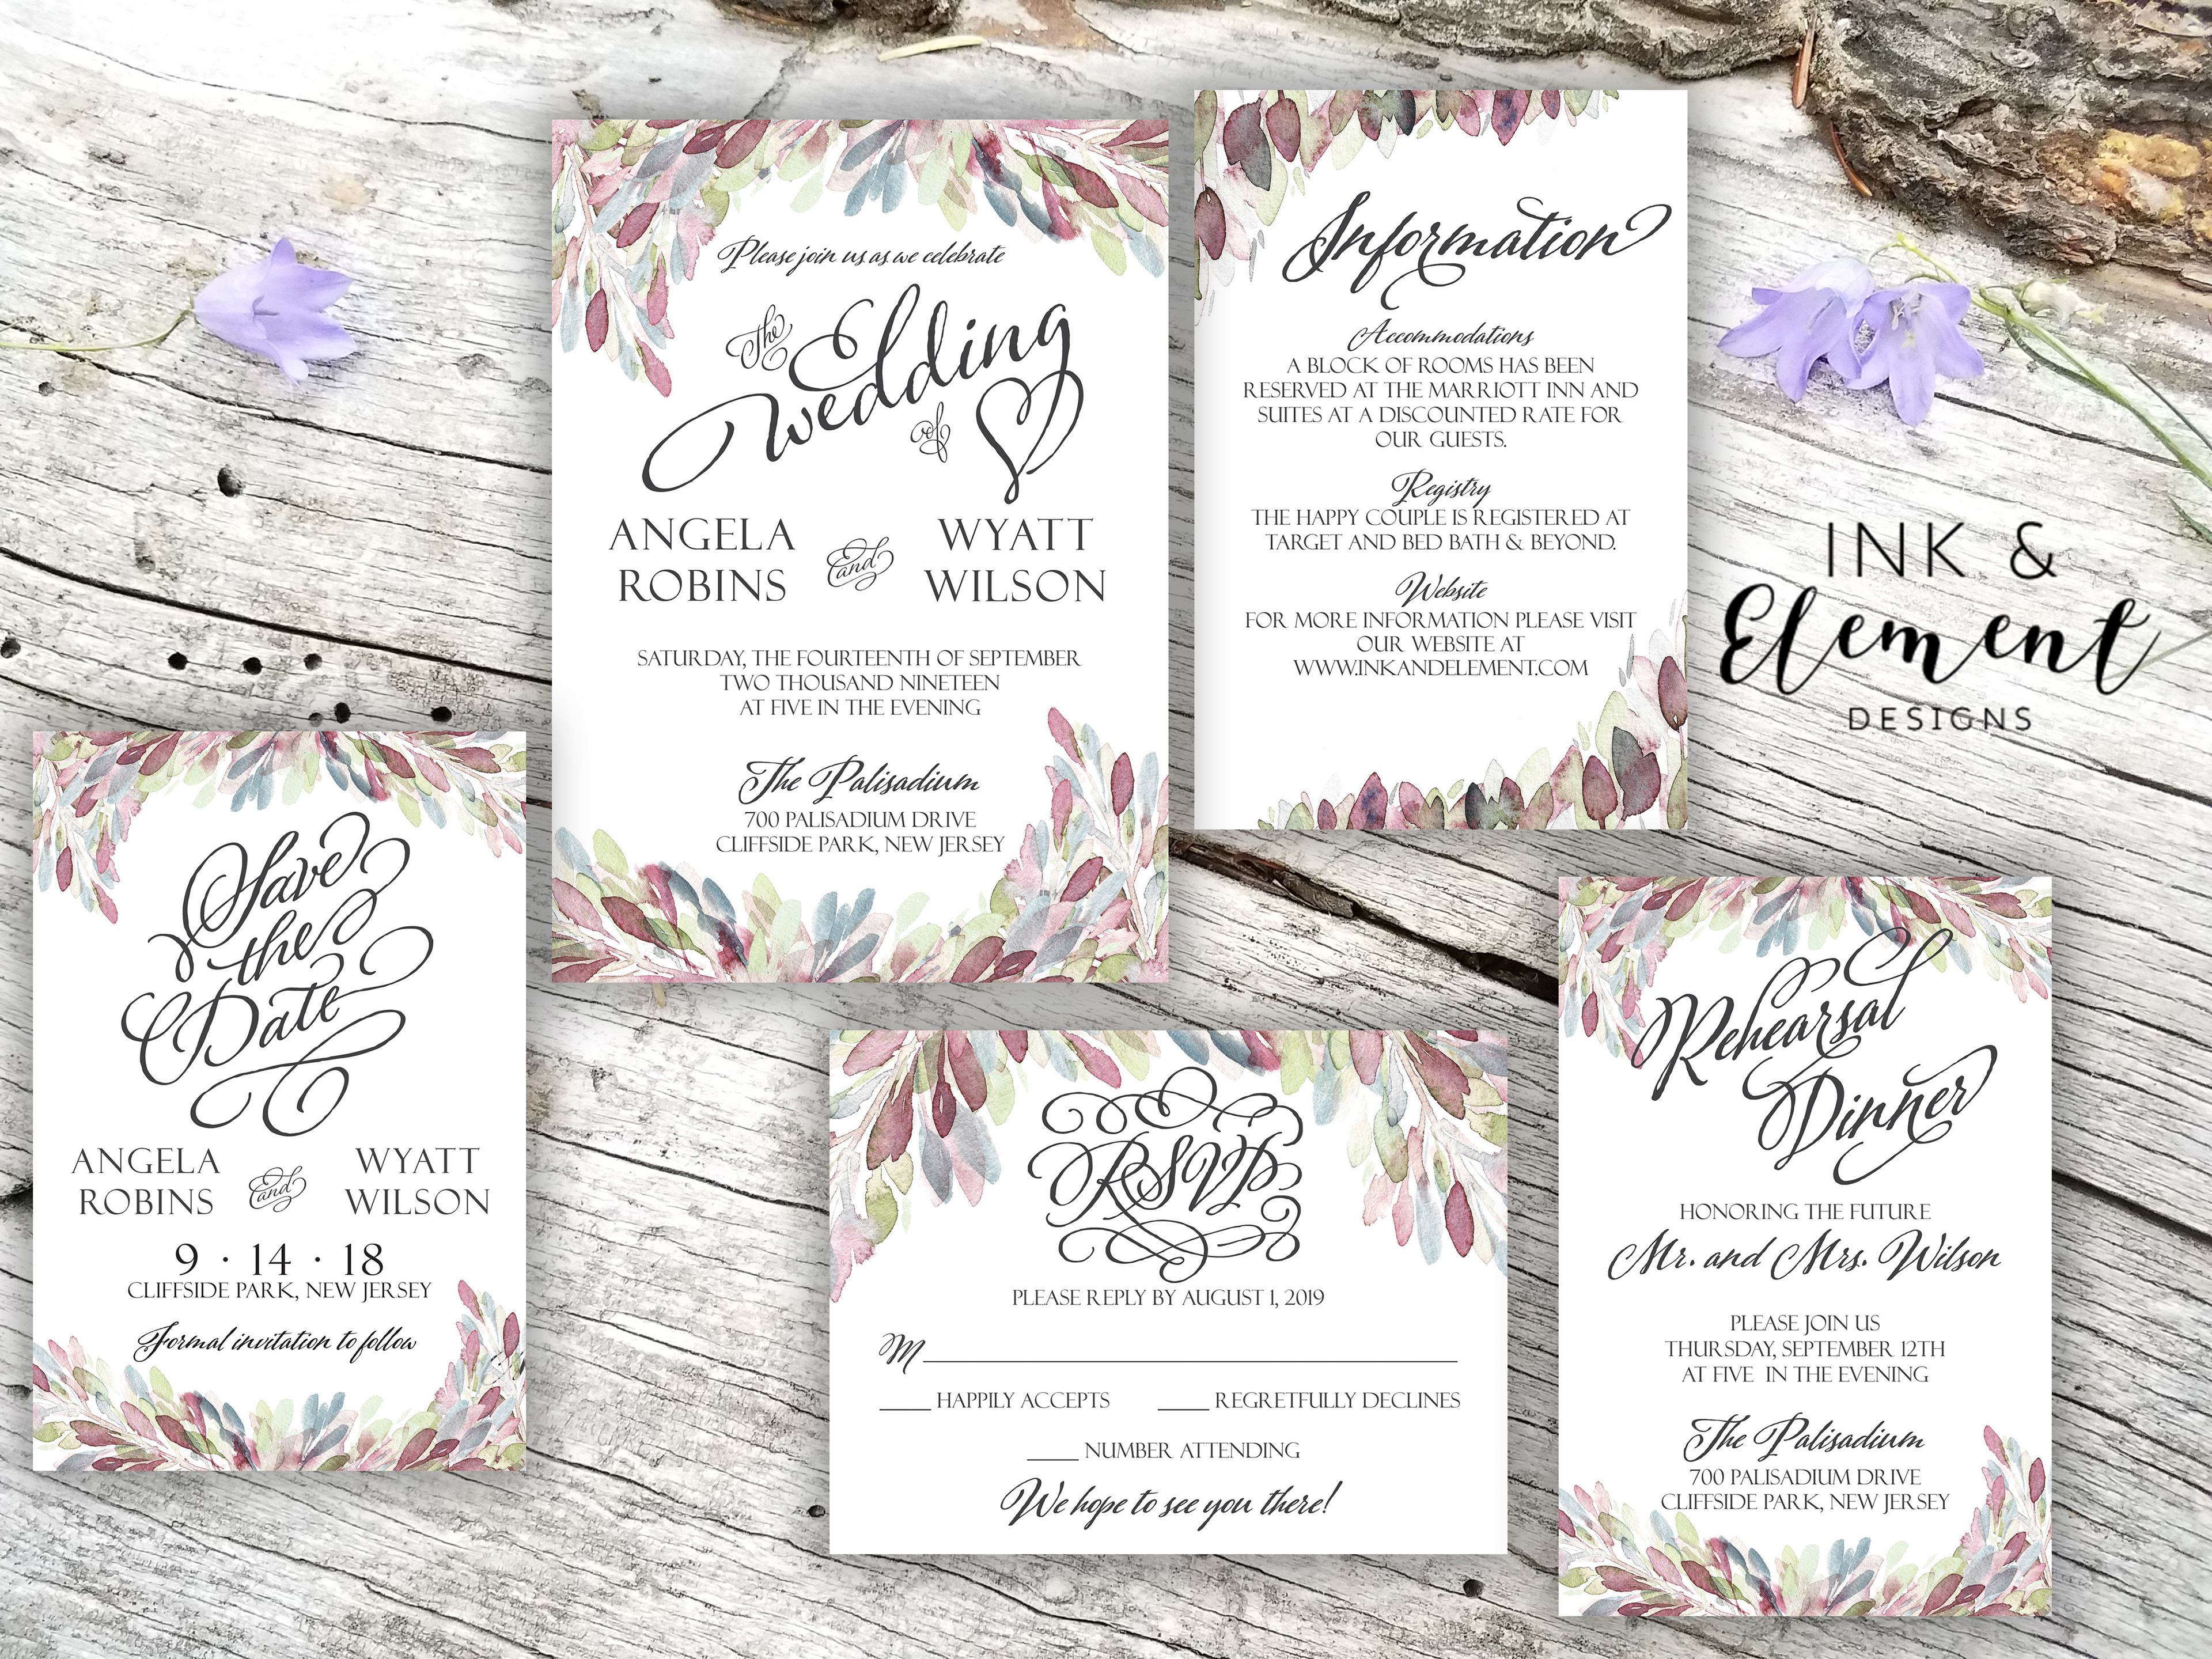 Ink and Element Designs - Weddings